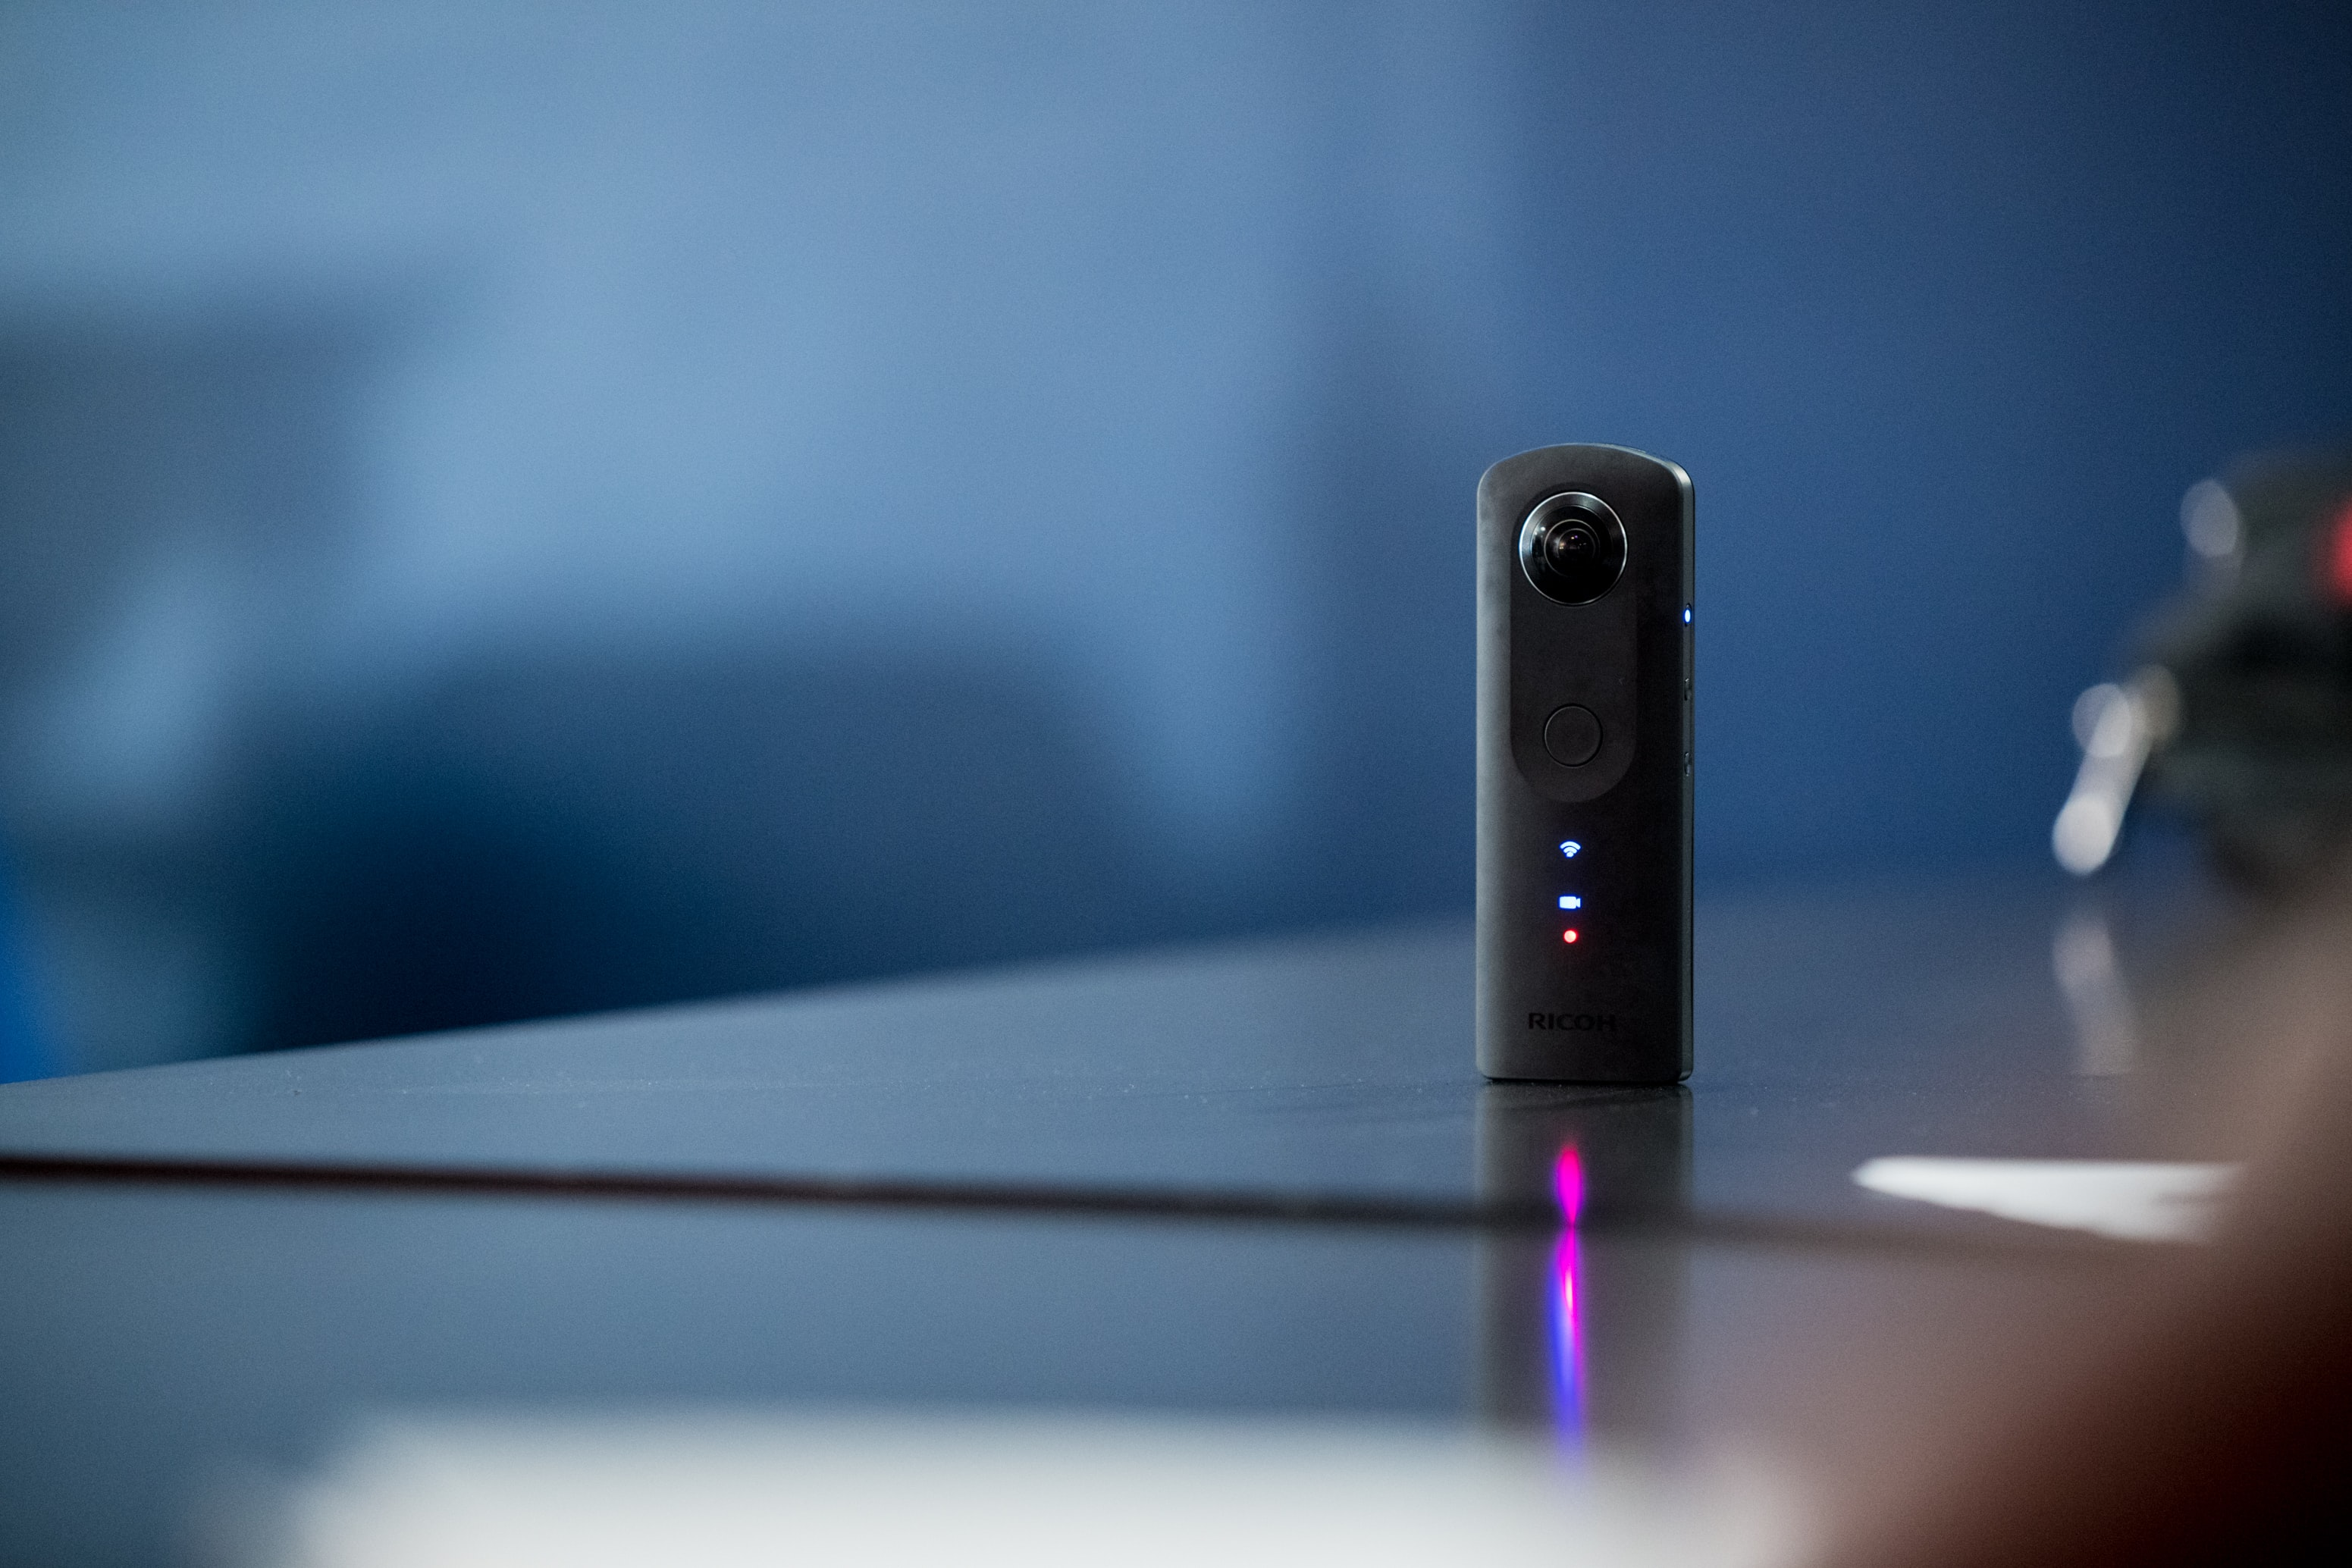 black IP camera on black surface selective focus photography